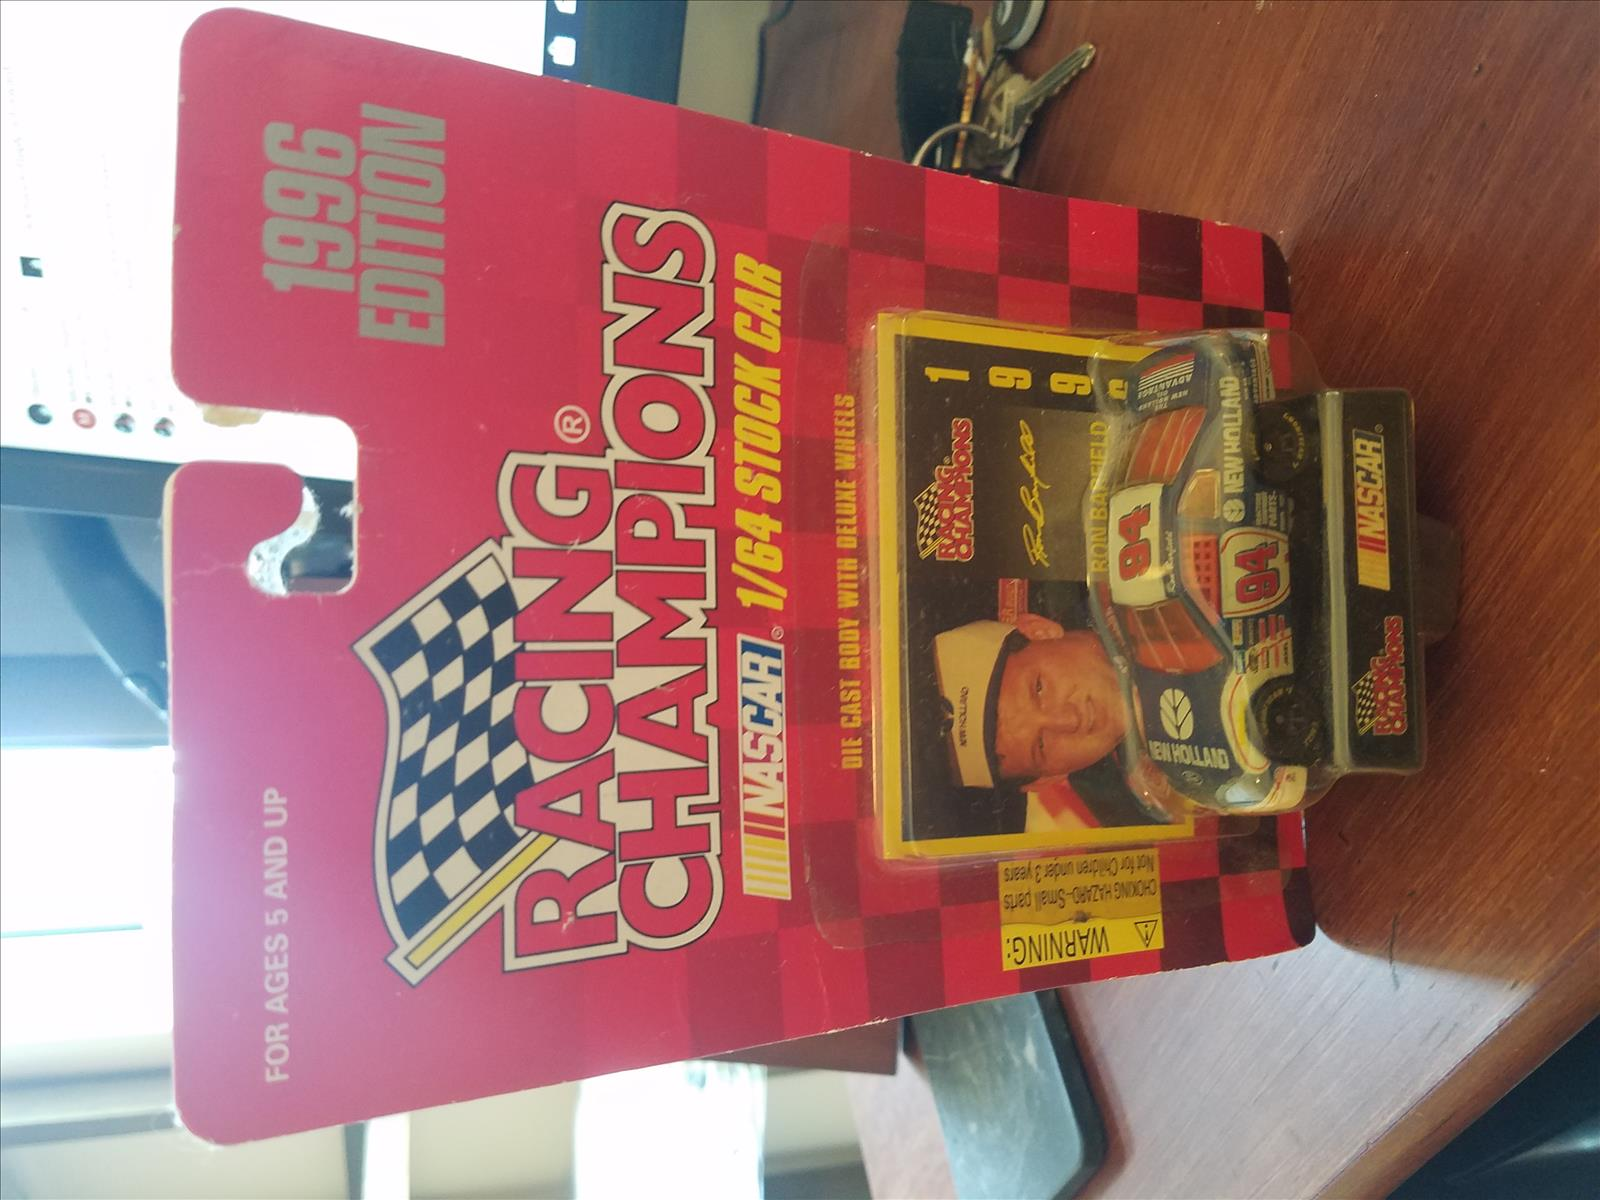 1996 Ron Barfield NASCAR Diecast 94 New Holland CWC 1:64 Racing Champions 1996 Edition 1